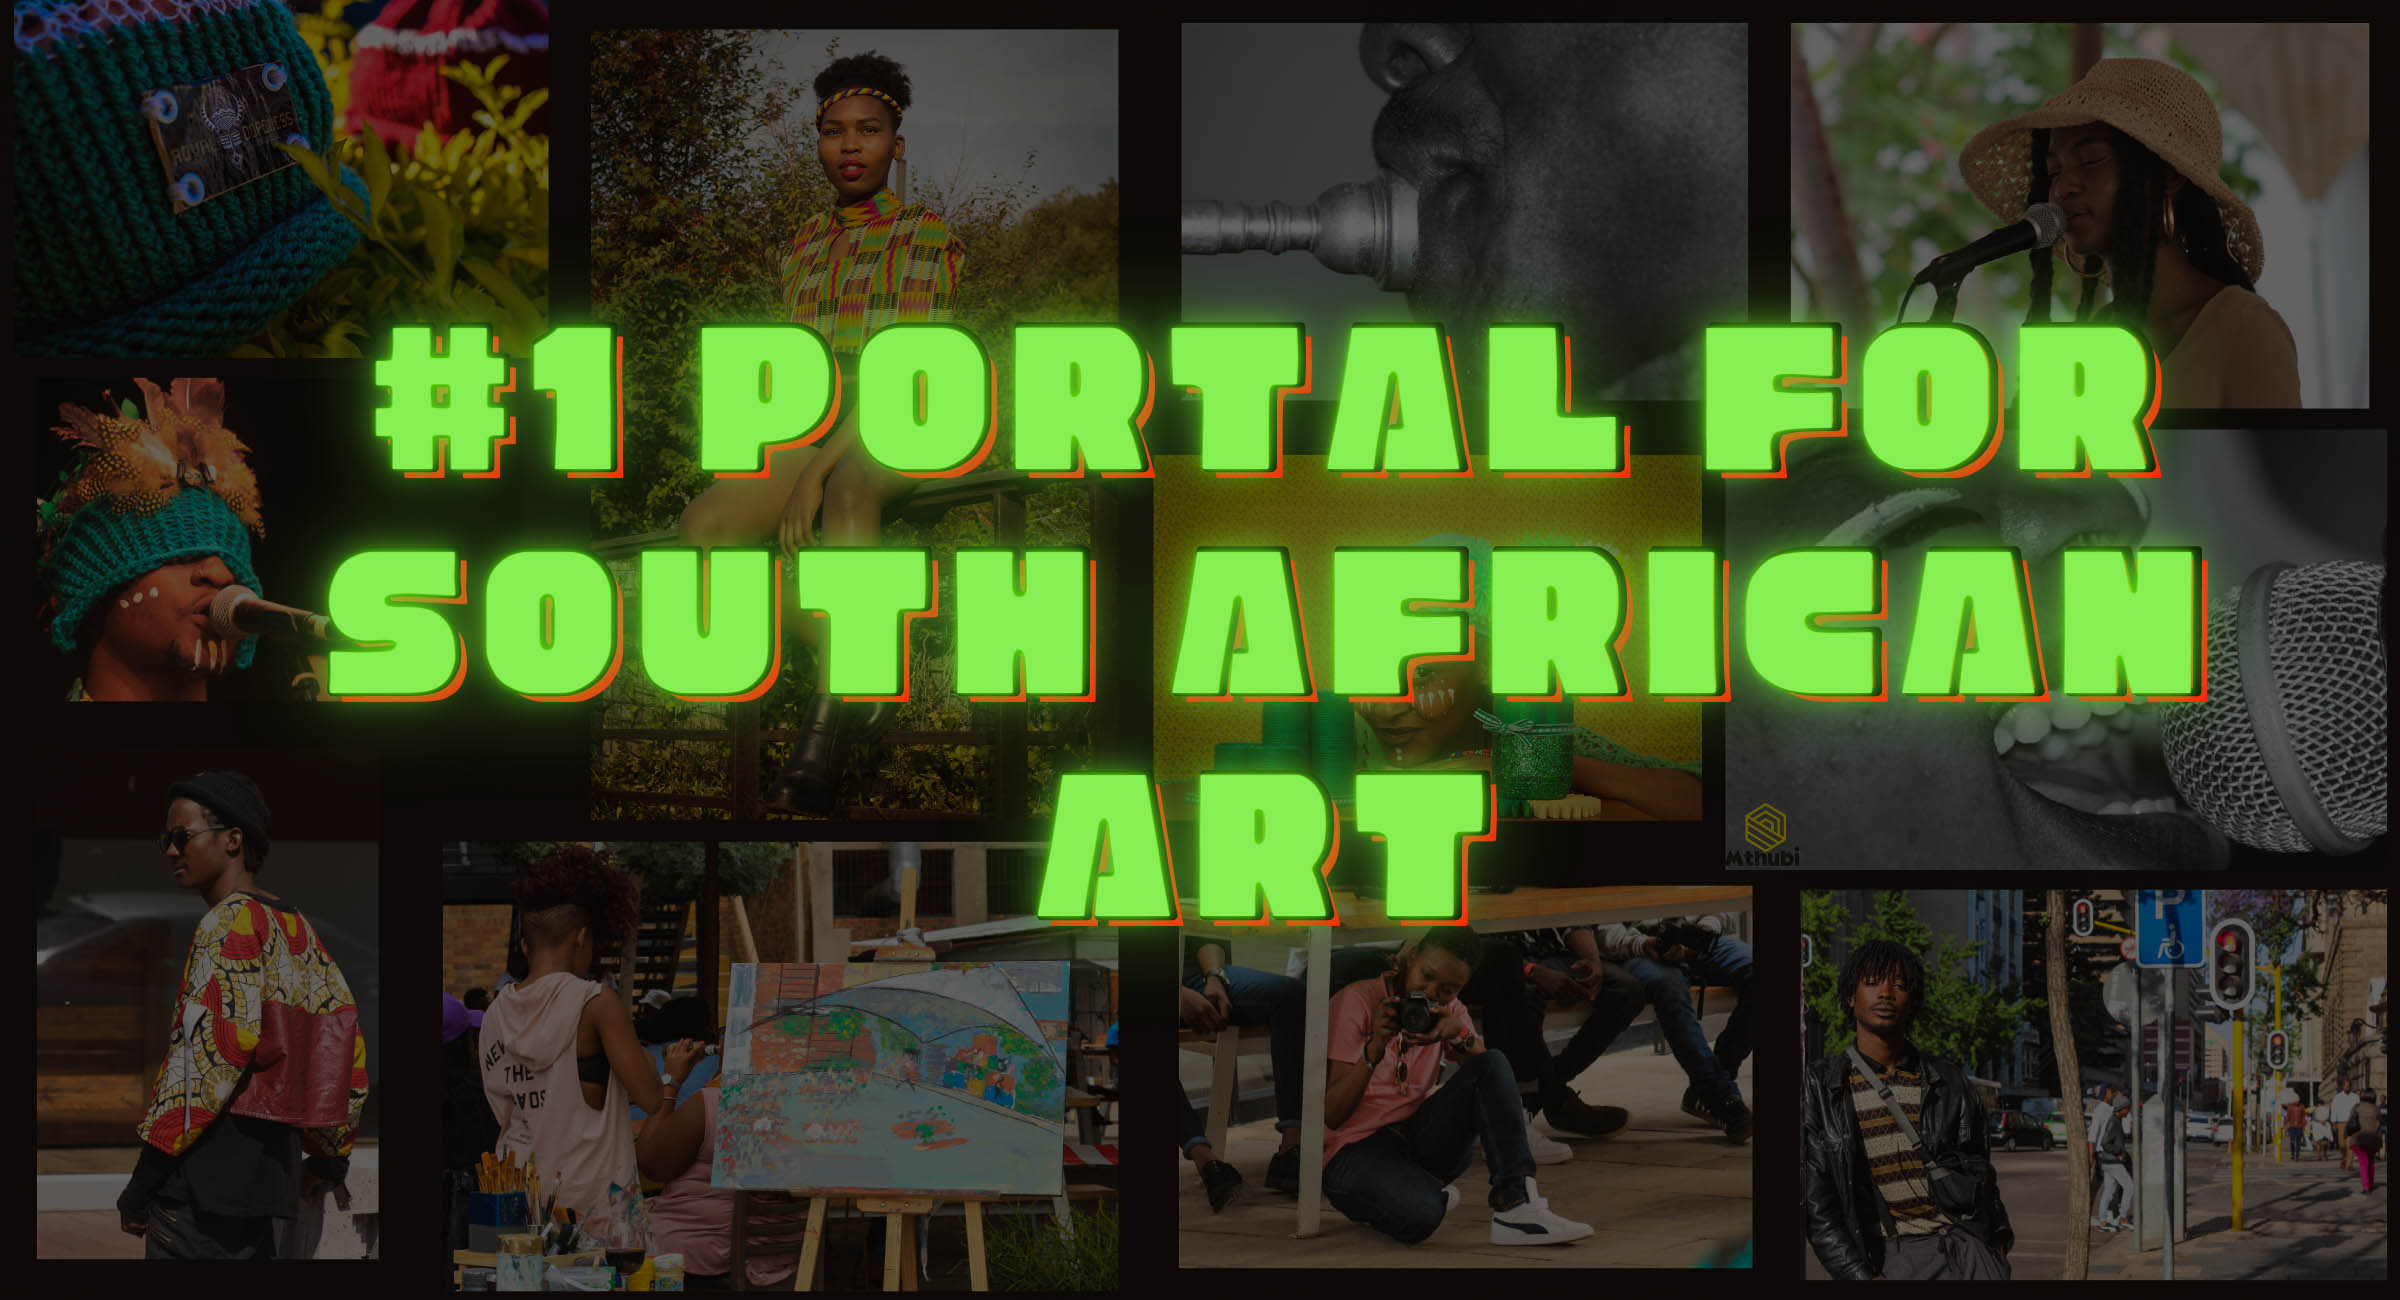 Art Portal by New Age Artistry